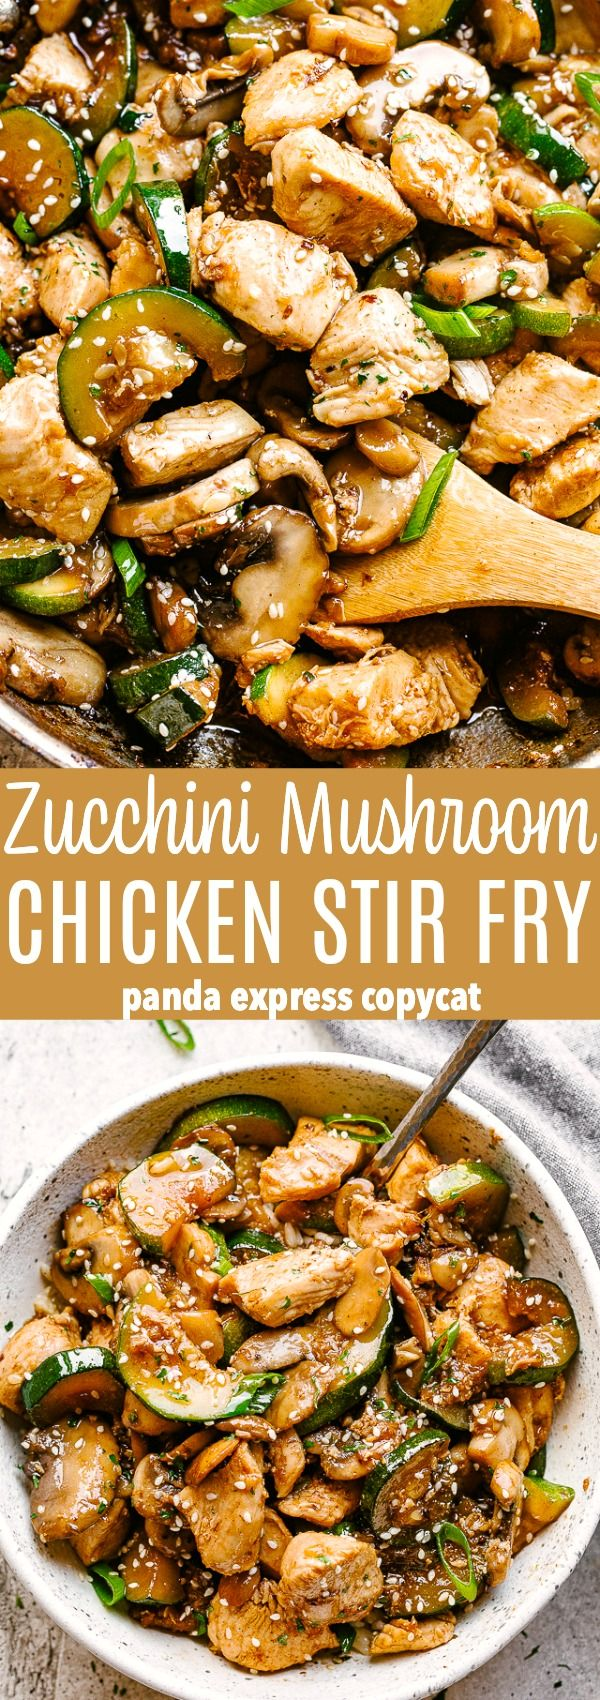 Zucchini Mushroom Chicken Stir Fry - Fresh and delicious chicken stir fry bursting with flavor in each and every bite! All you need is one skillet, 20 minutes, and just a handful of pantry ingredients.Chicken, zucchini, mushrooms, and the flavors of PANDA EXPRESS come together in a recipe that's about to become your family's favorite take-out fake-out! #healthystirfry